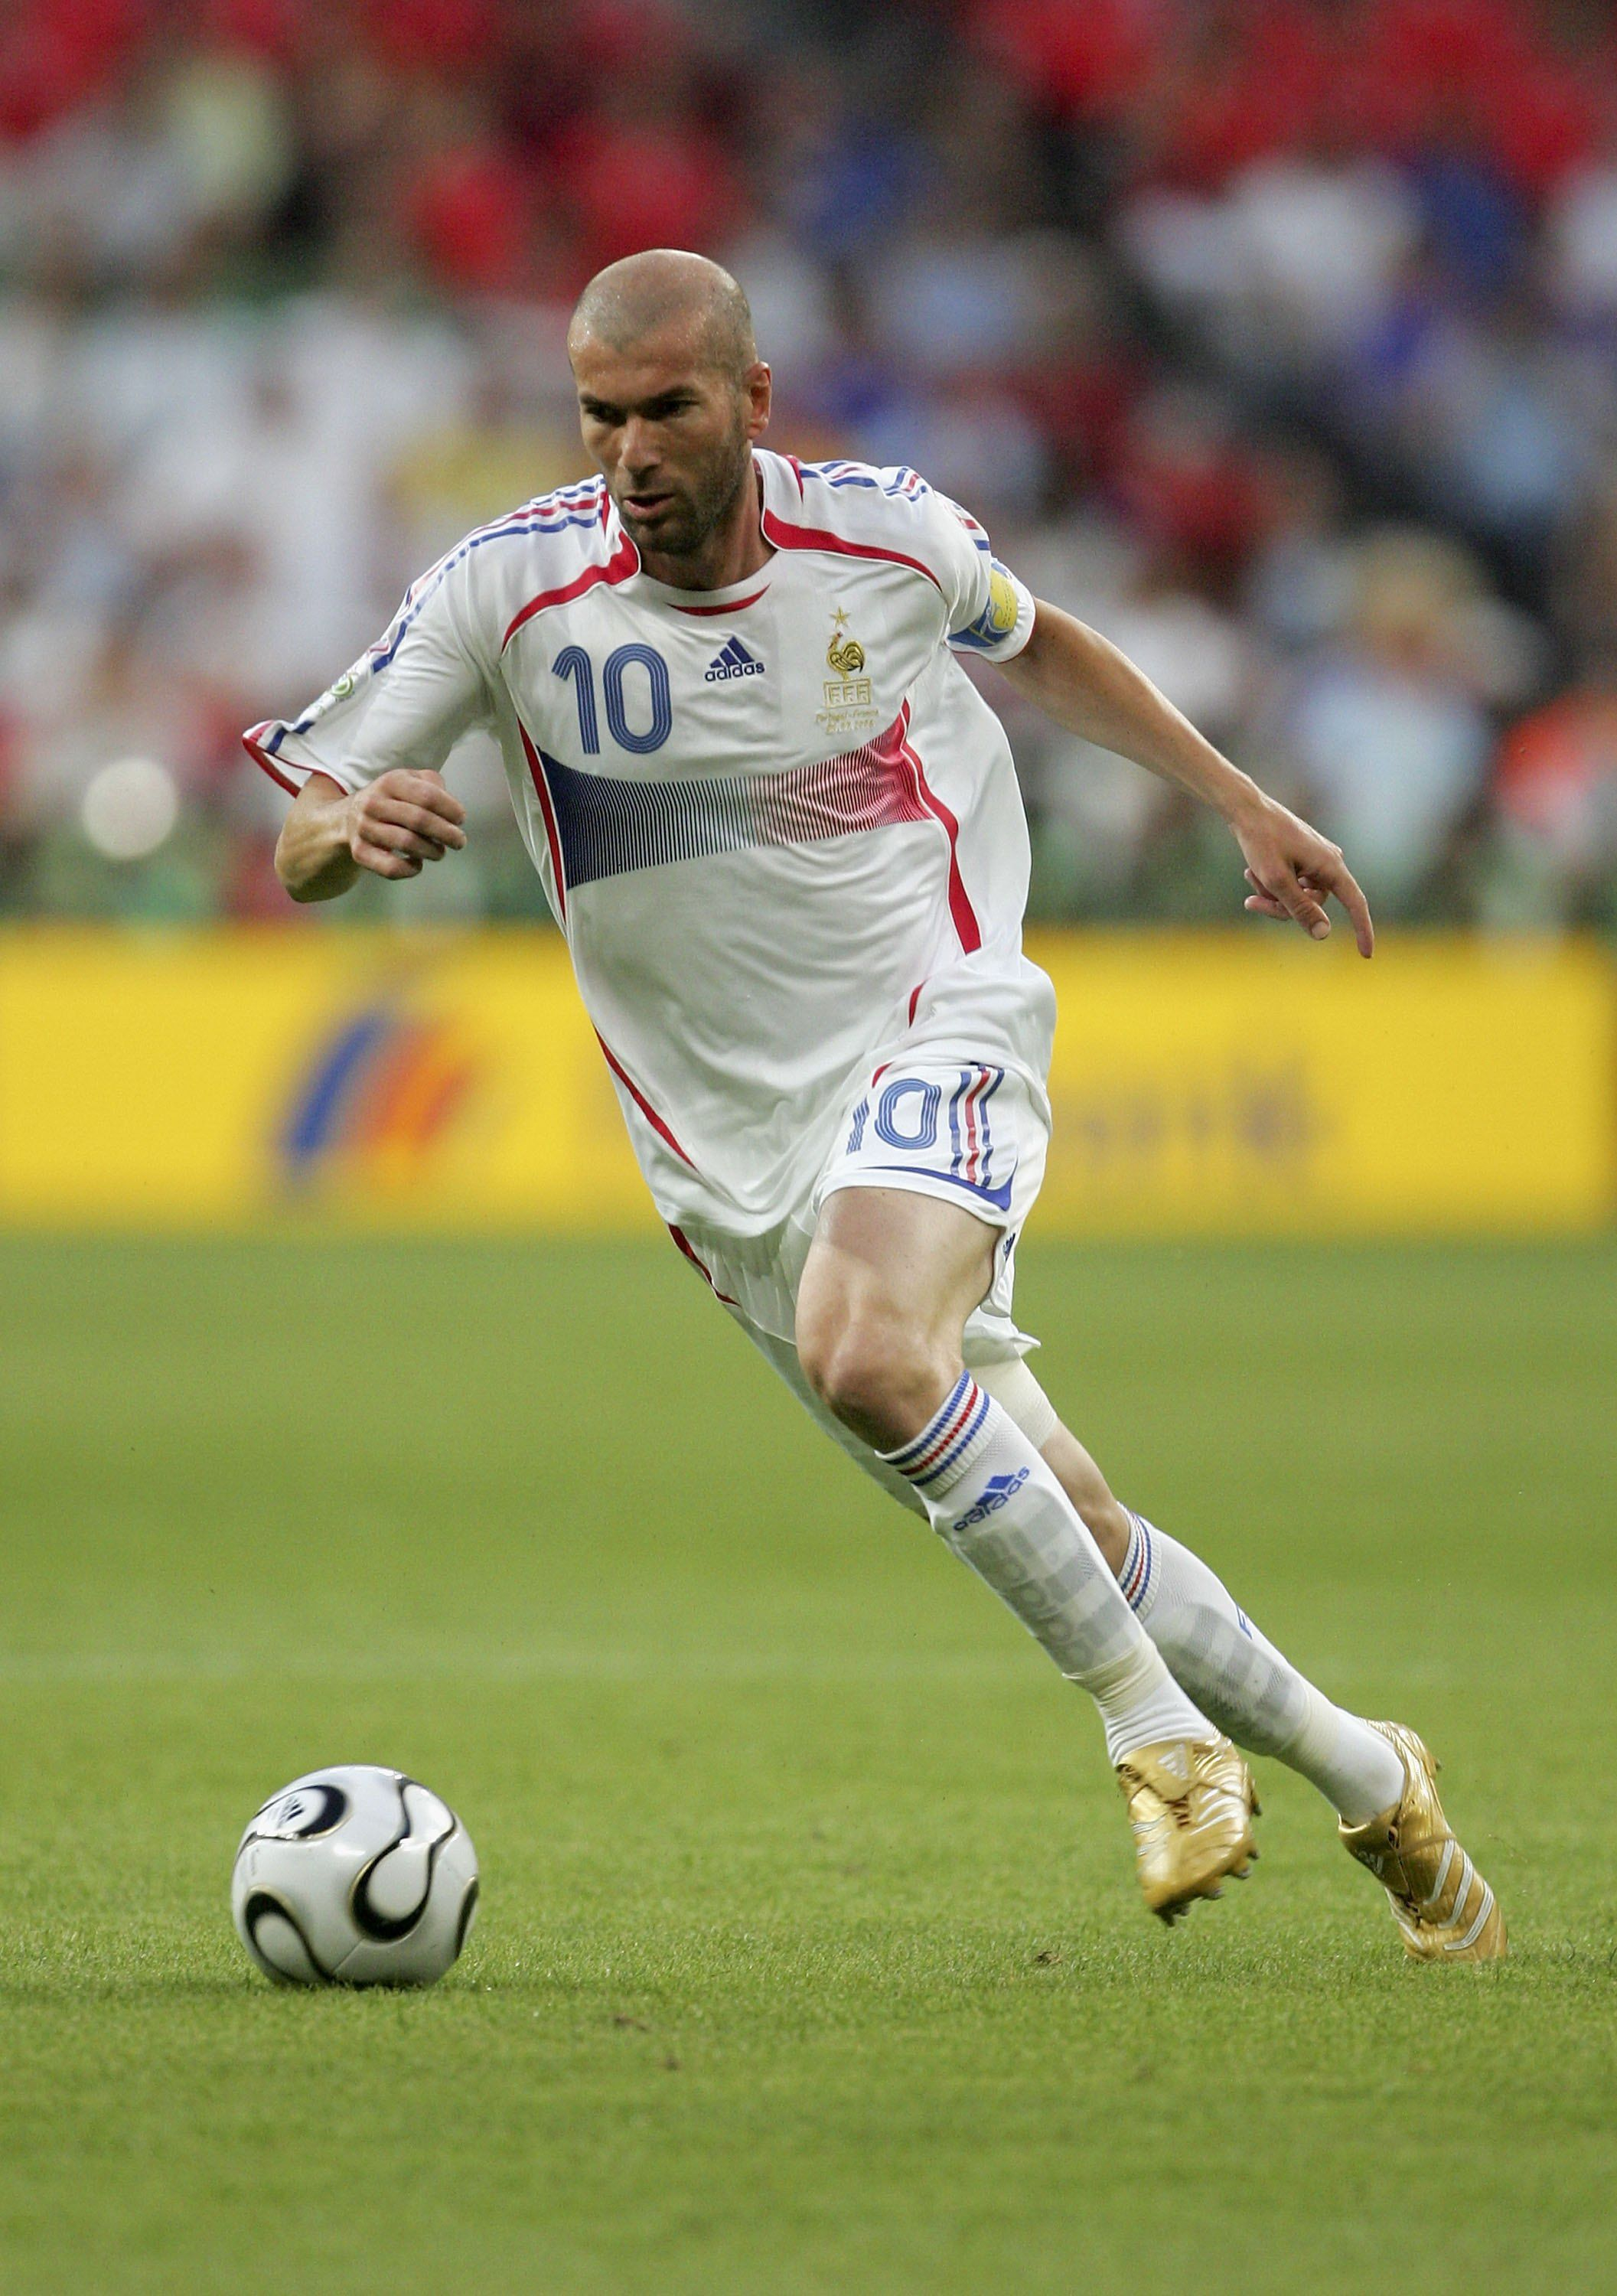 This is Zinedine Zidane is a well known soccer player that led